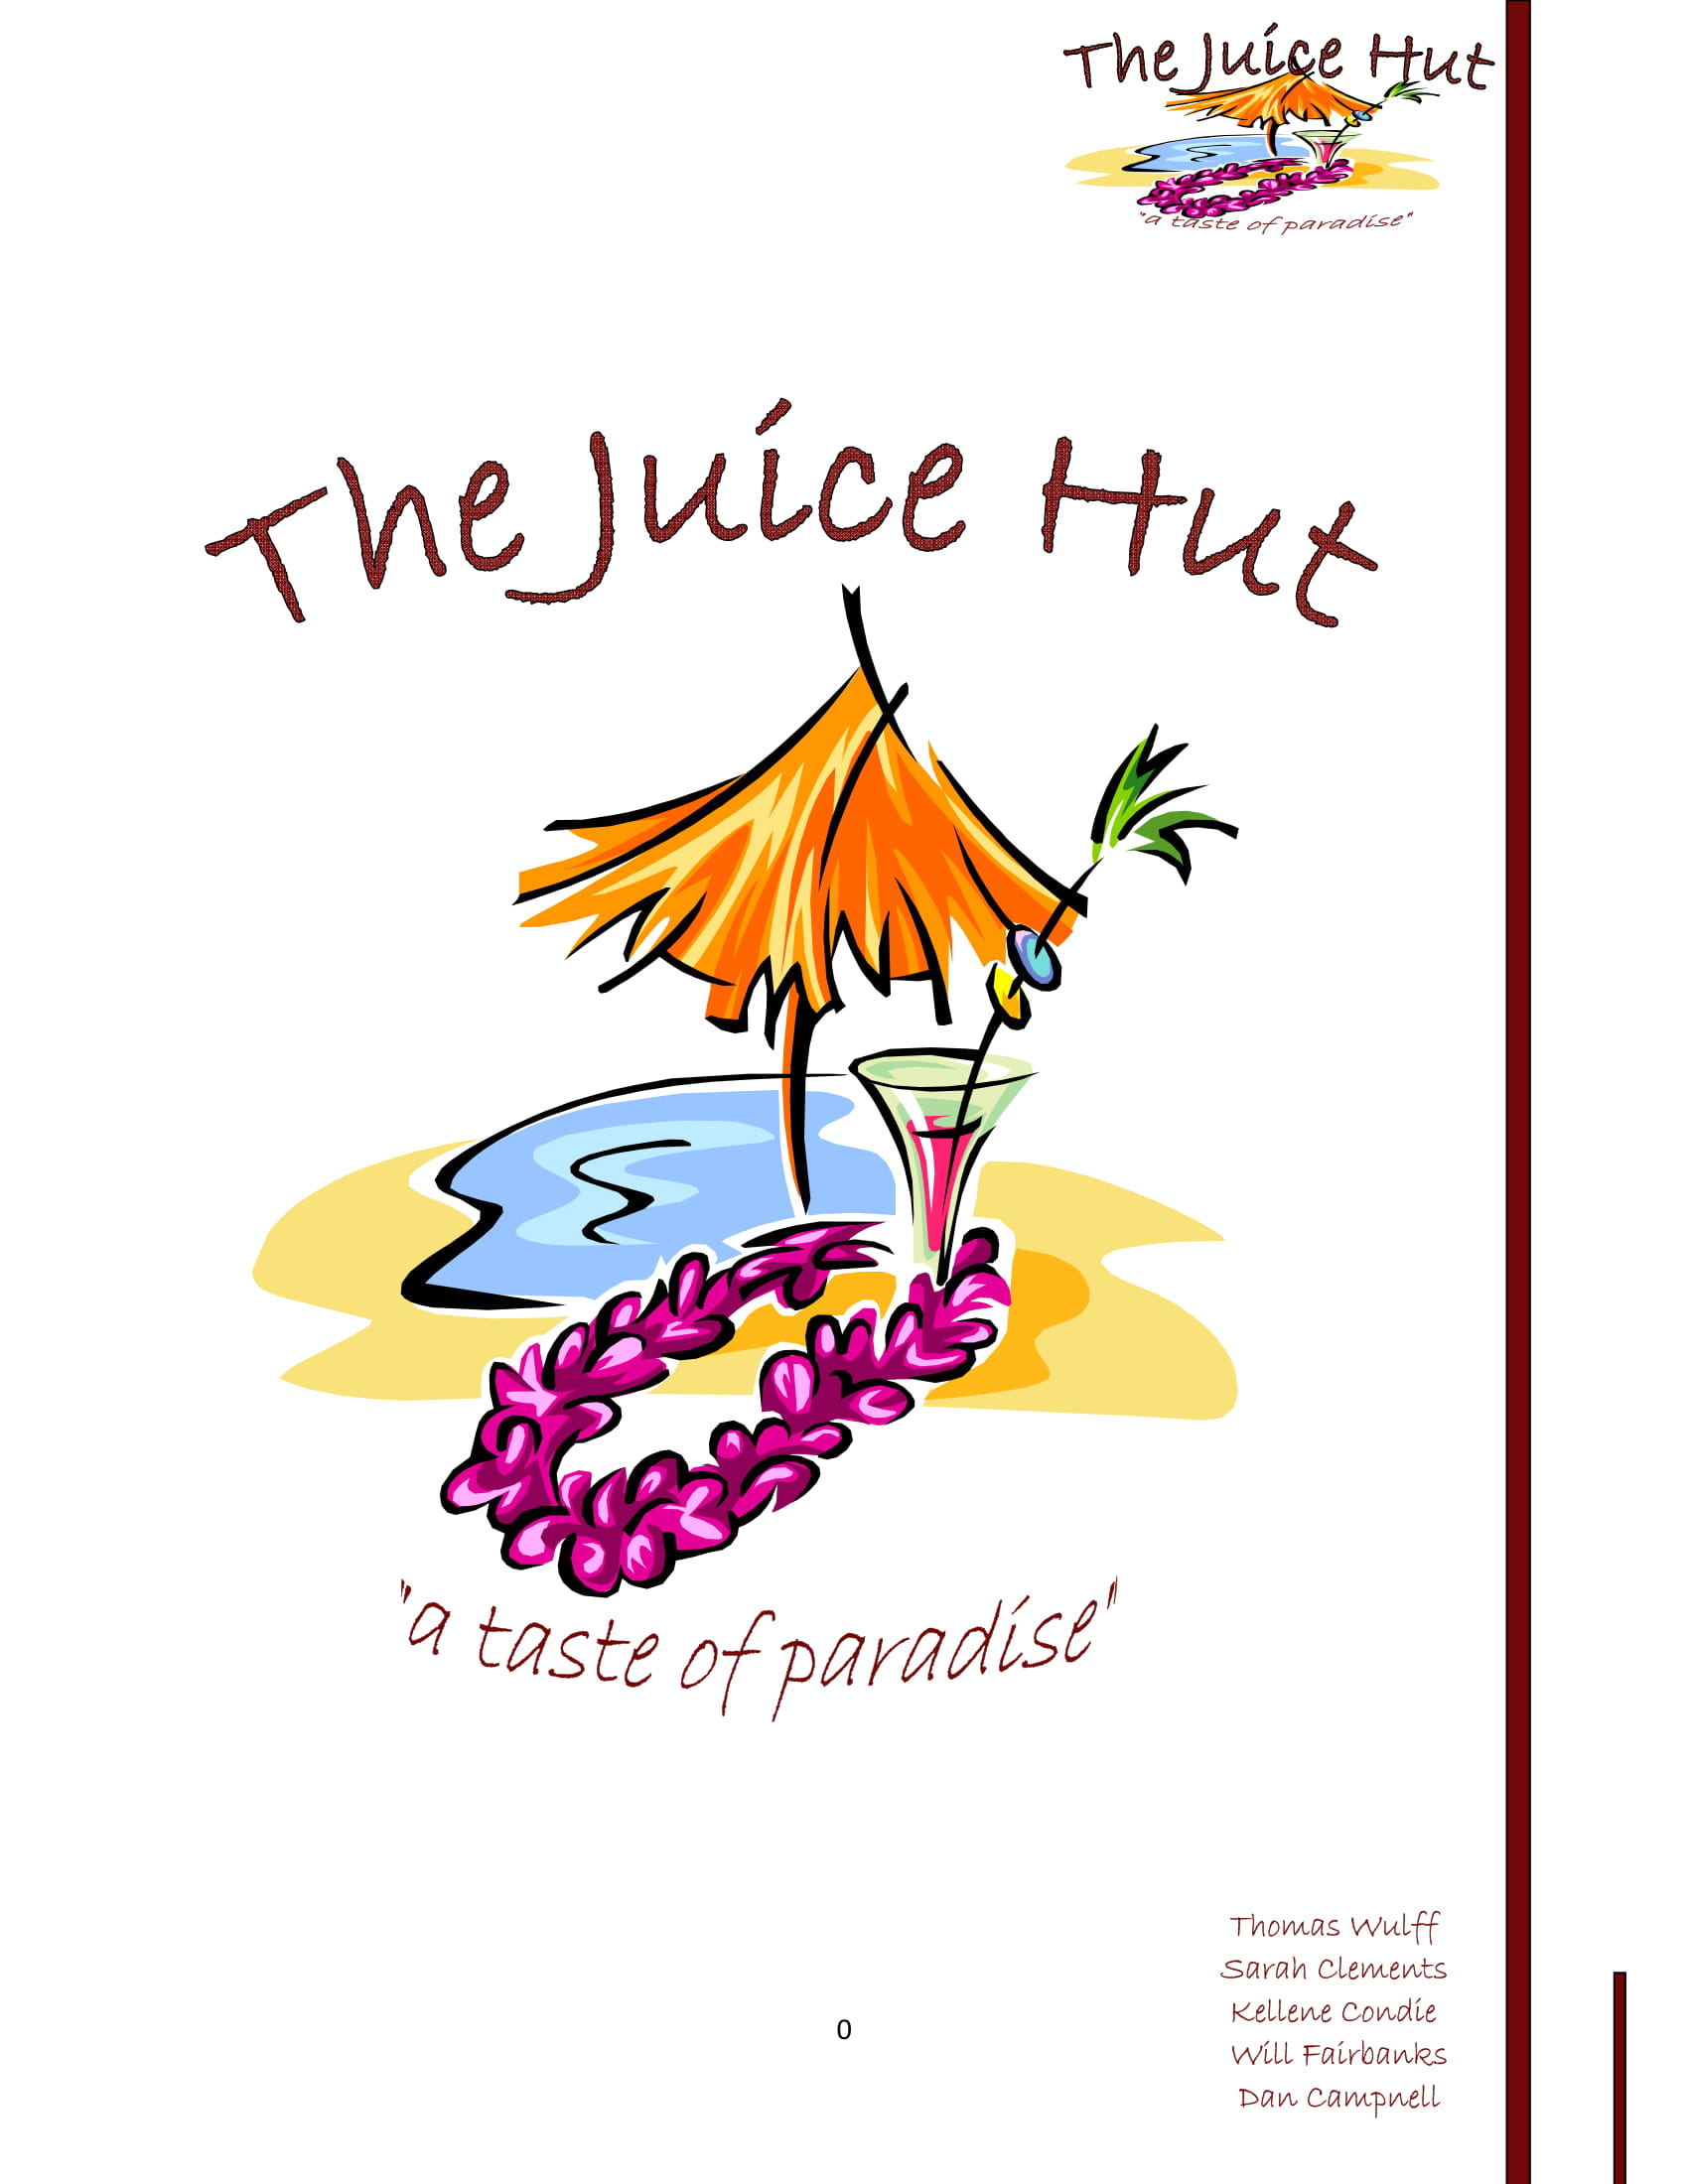 juice hut business plan example 01